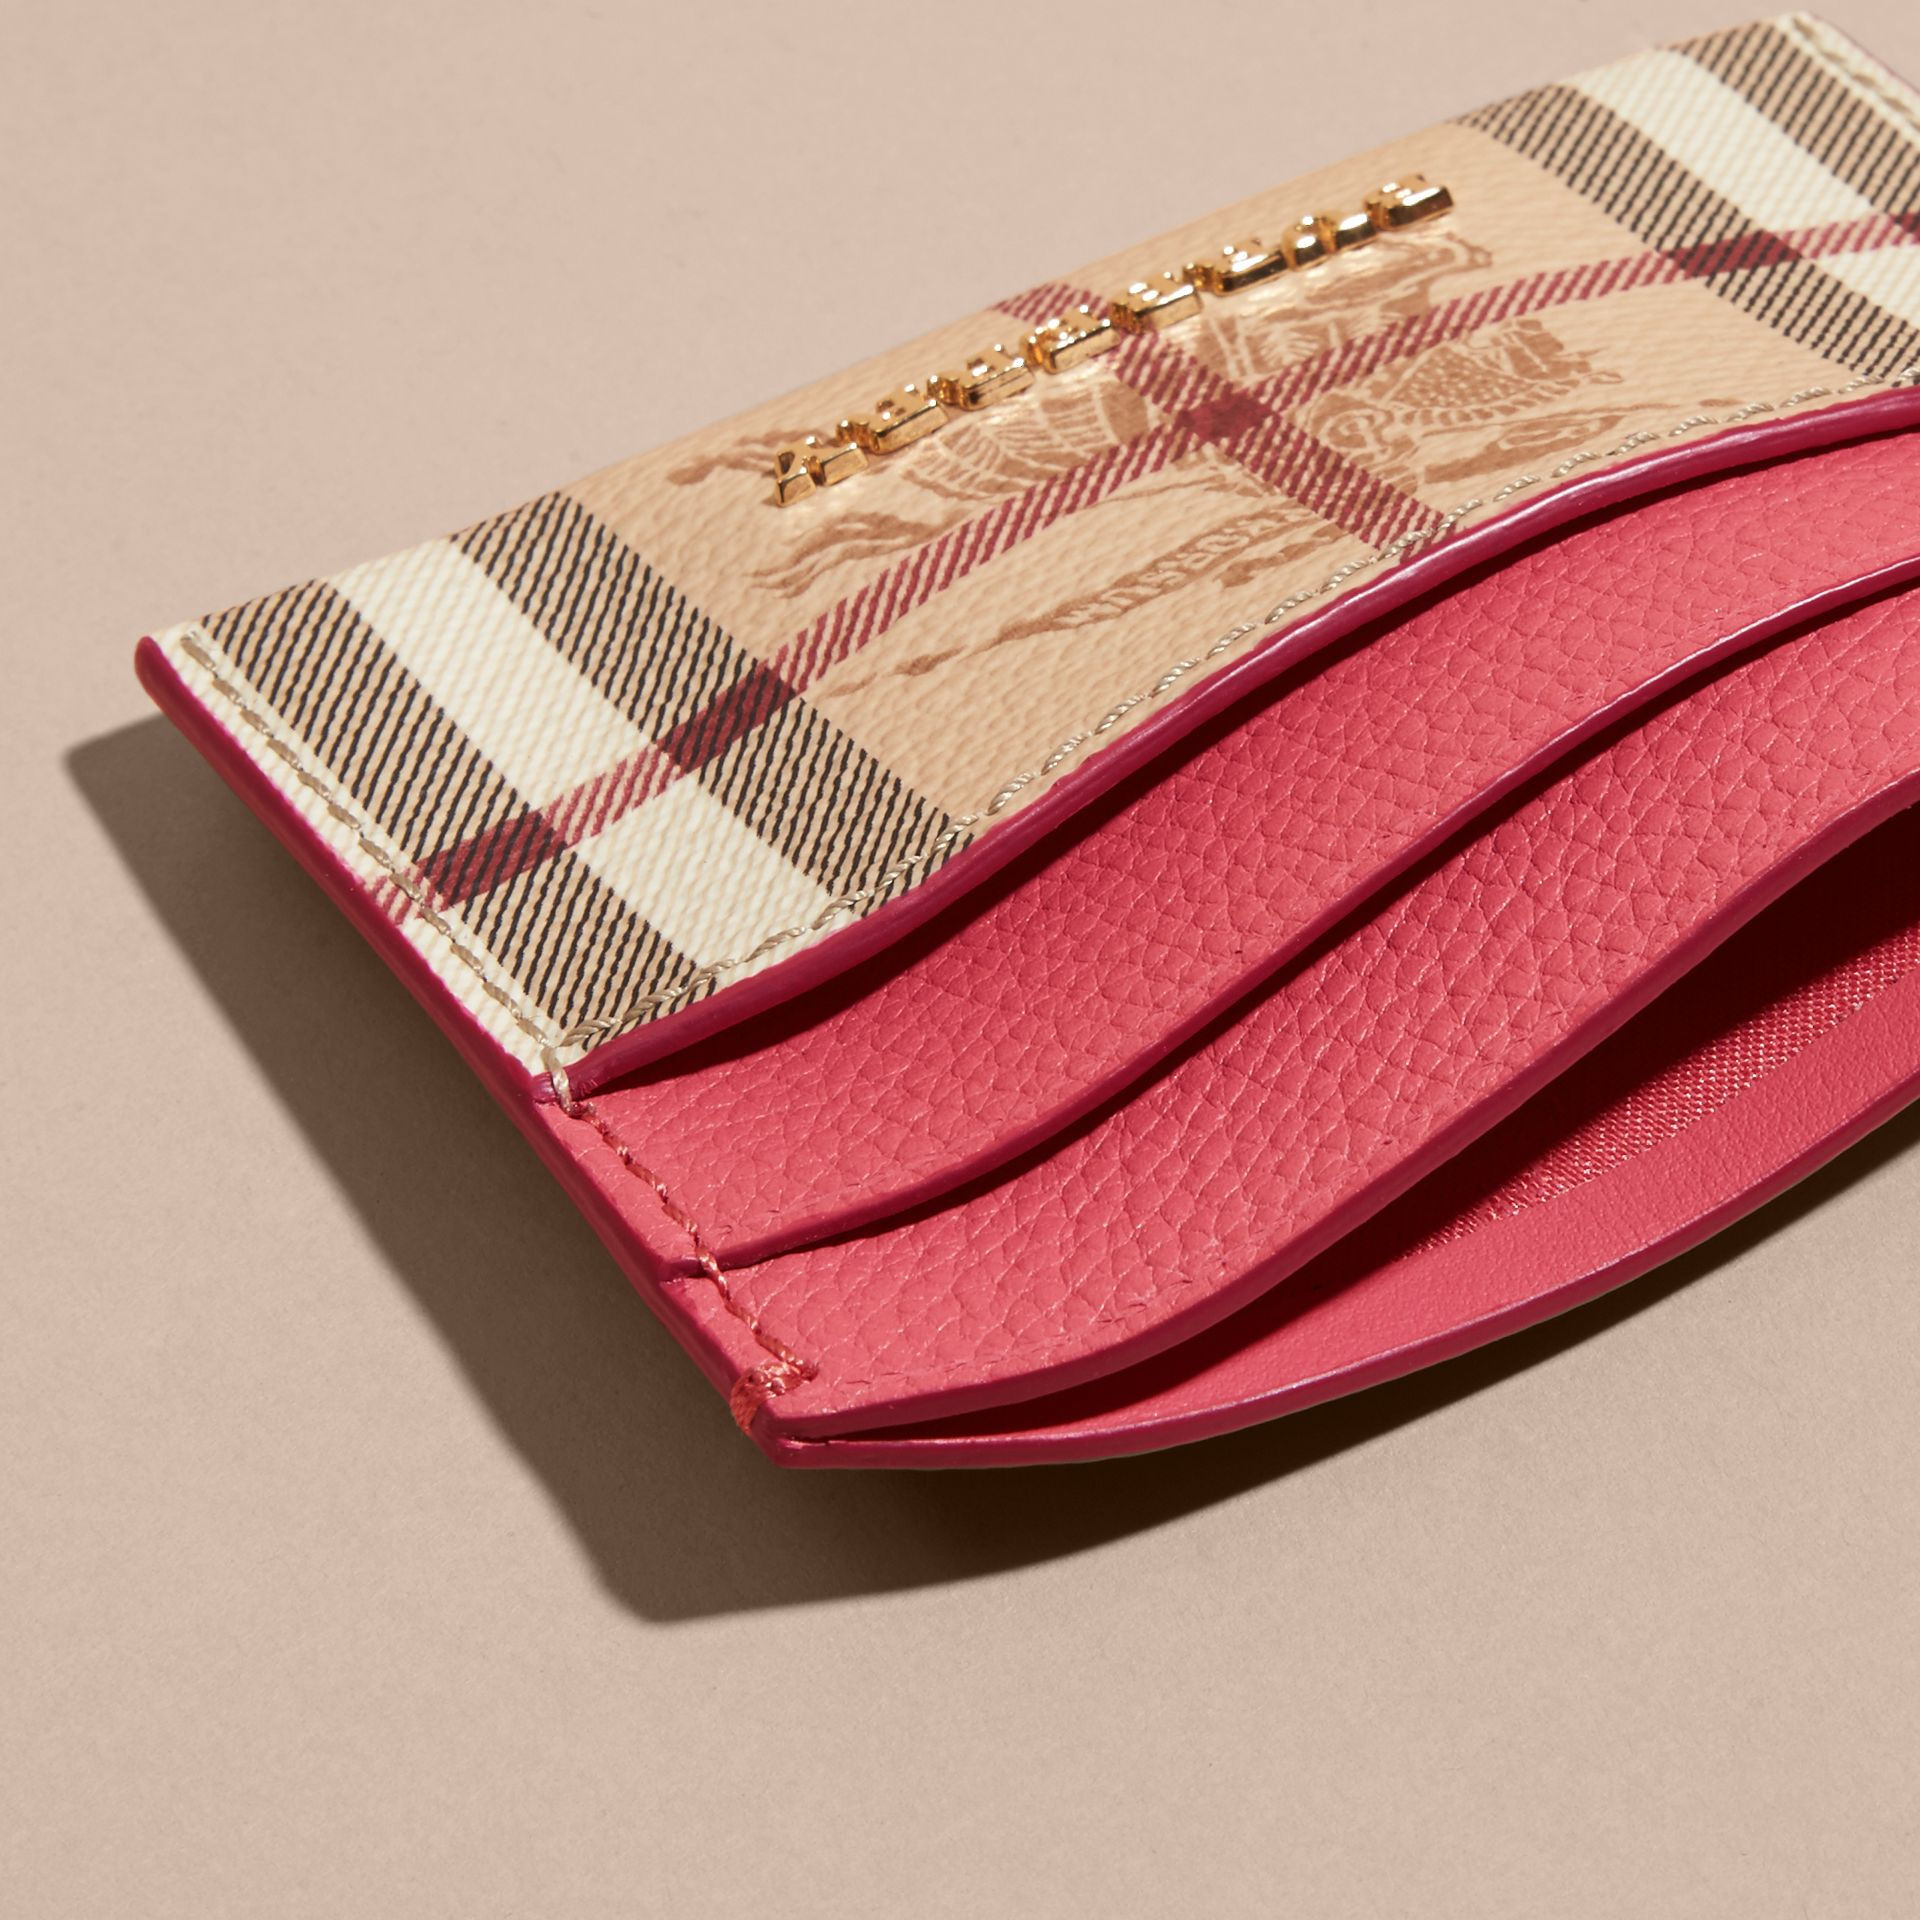 Haymarket Check and Leather Card Case in Plum Pink - Women | Burberry - gallery image 5